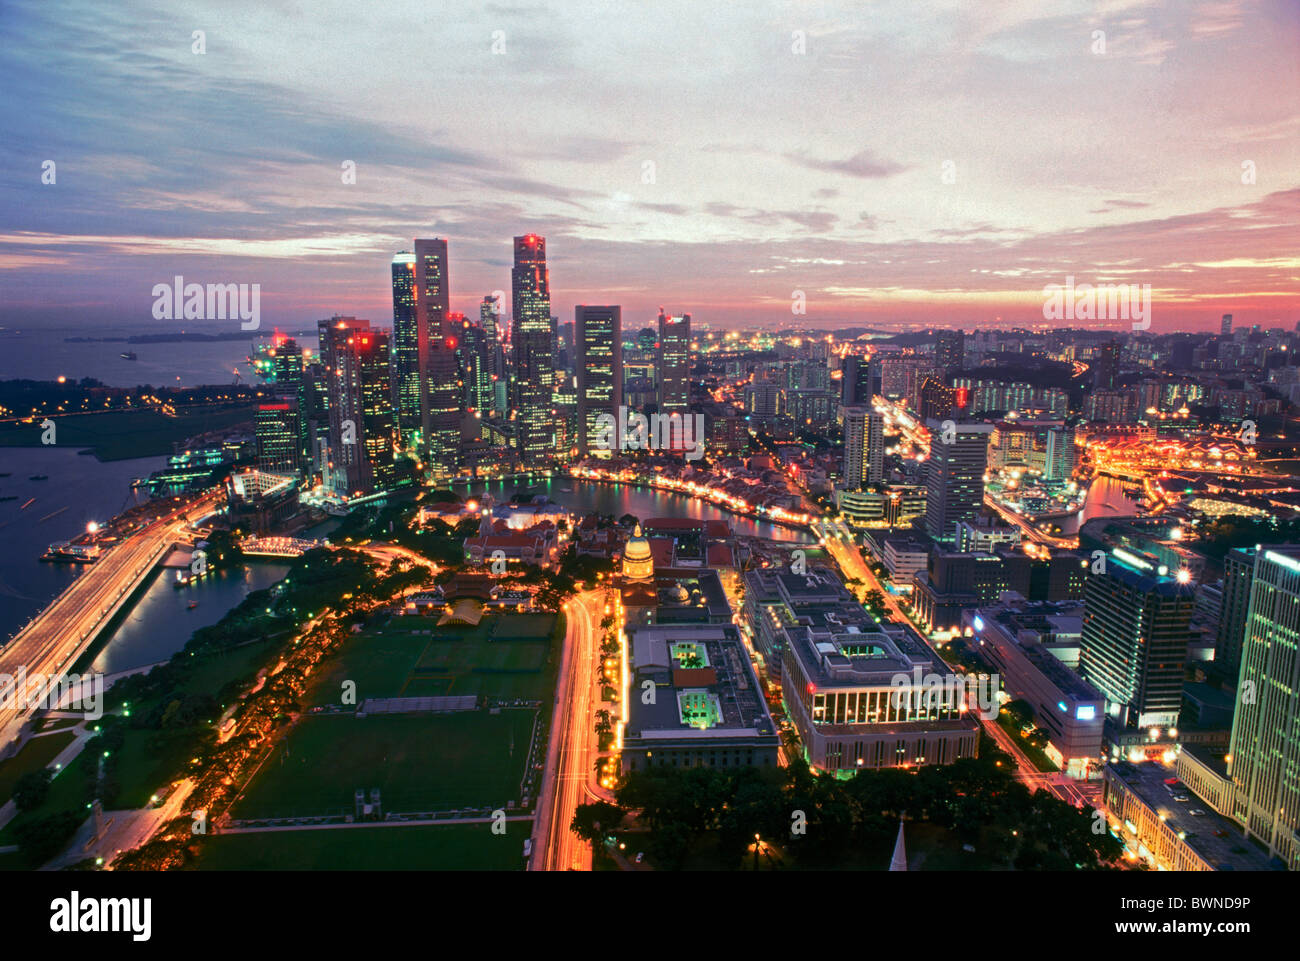 Overview of city lights and central business district of Singapore at sunset - Stock Image